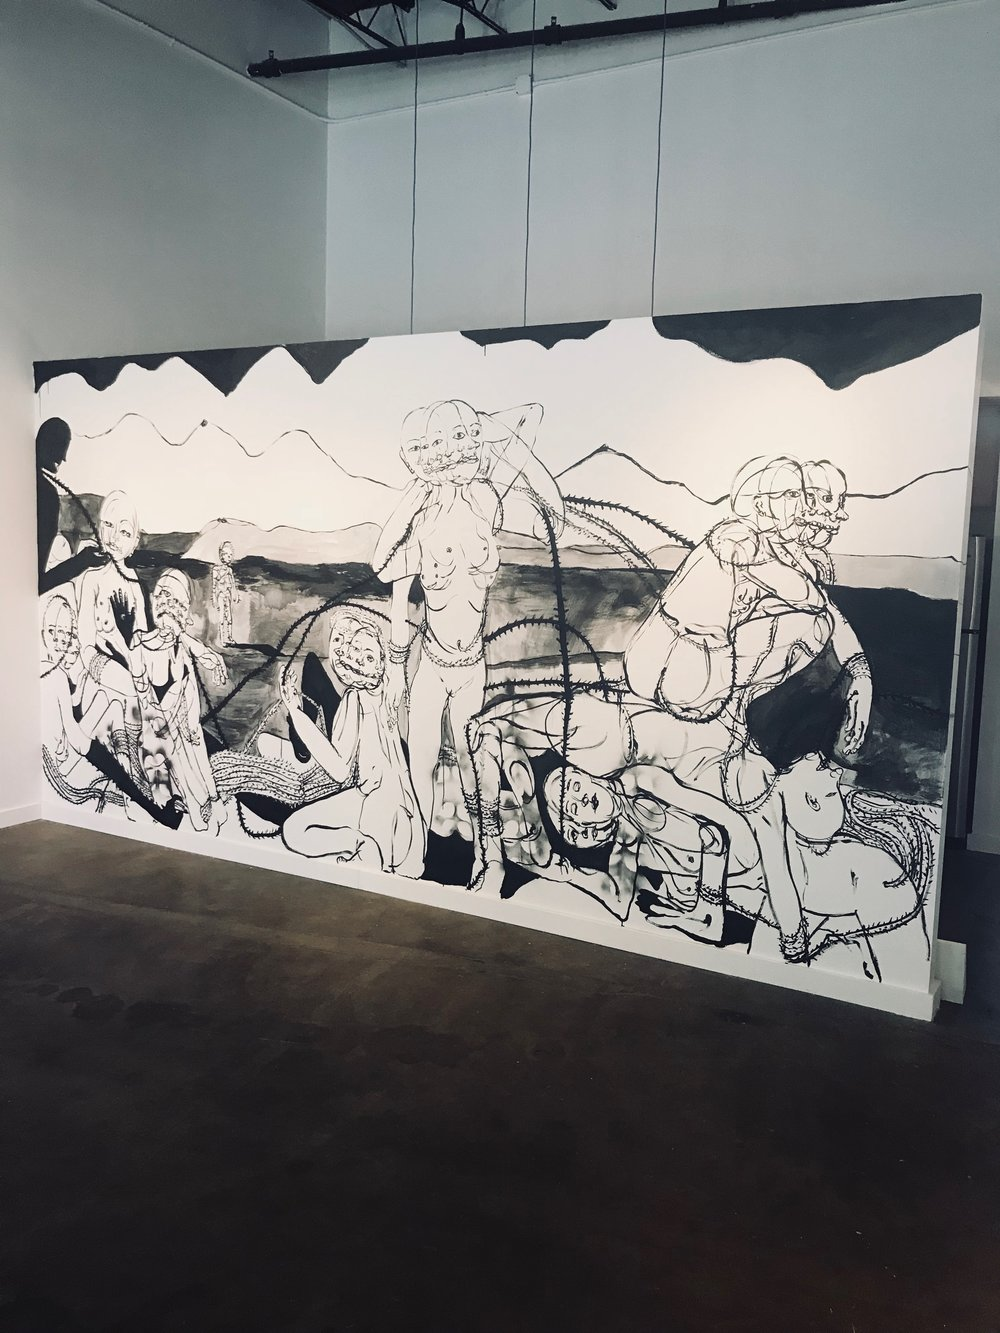 The bathers, bathing , 2018  Ink wash and spray paint on drywall   96H x 180W inches